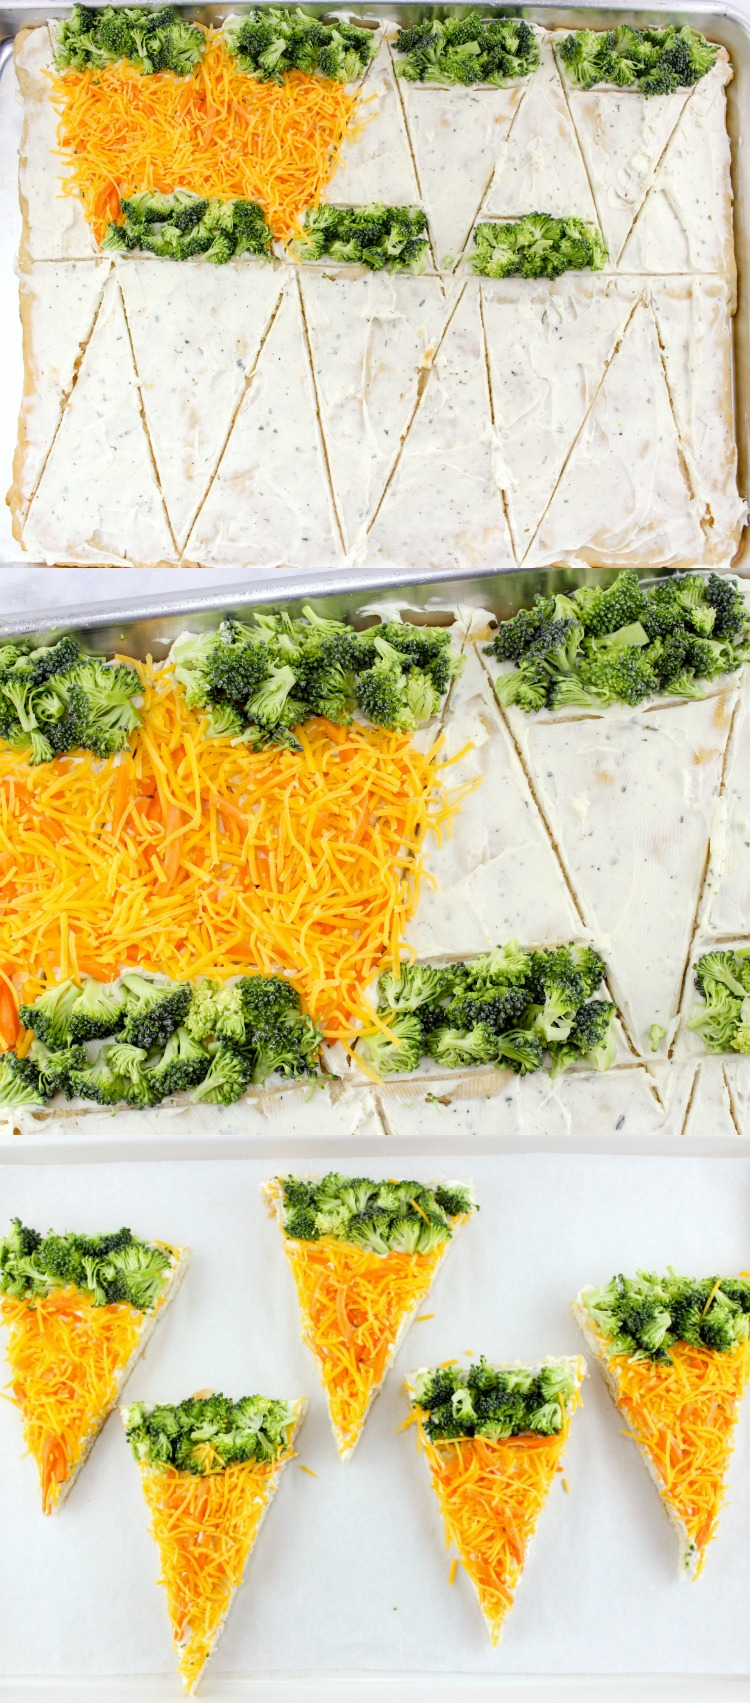 Carrot Vegetable Pizza Recipe with an Easter twist! Chopped veggies with a Crescent Roll crust make these veggie bars a fun Easter appetizer or brunch menu item. | OHMY-CREATIVE.COM |  #carrotappetizer #sidedishrecipe #crescentrollrecipe  #Easterrecipe #Easter #easterbrunch #veggiebars #vegetablepizza